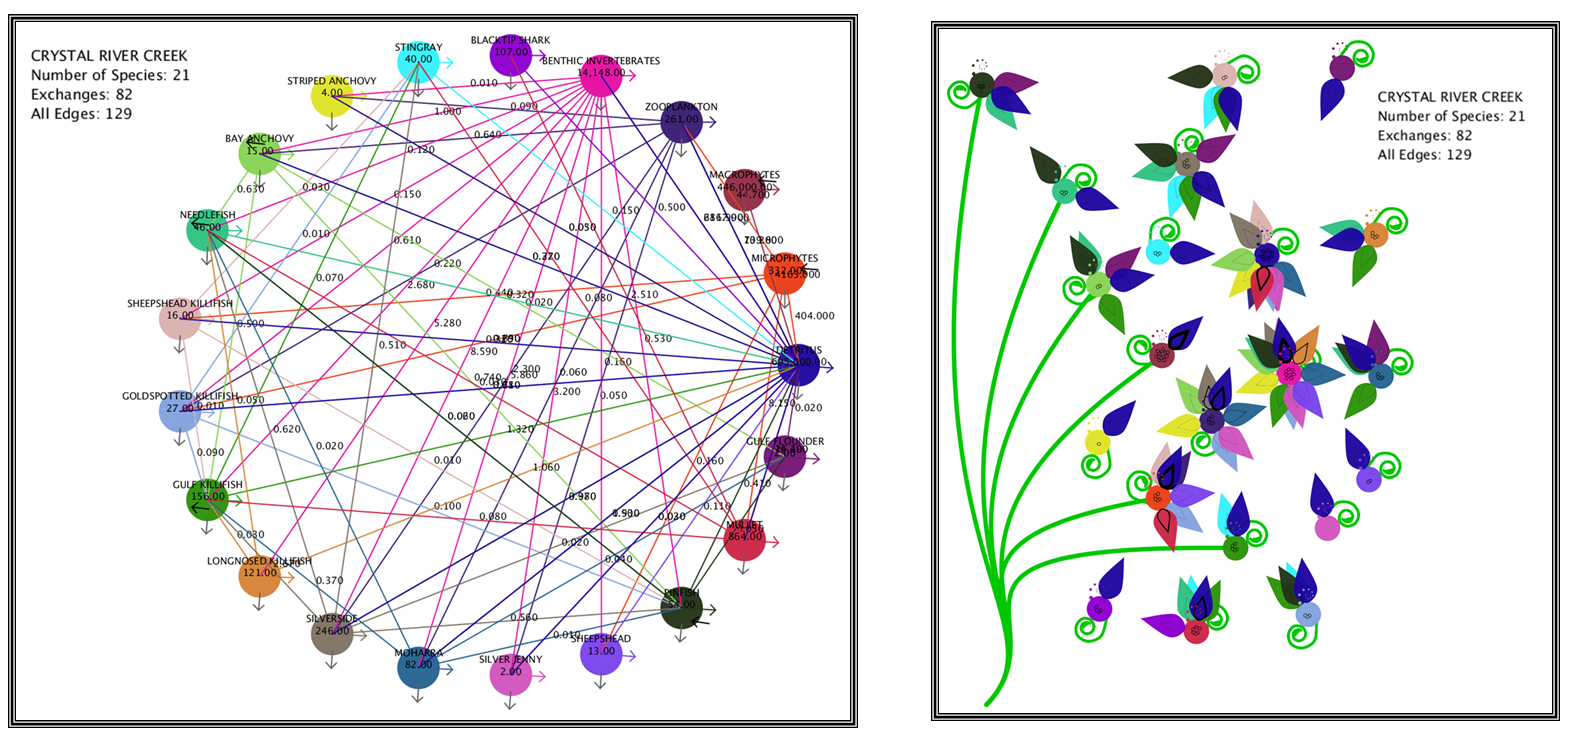 Node-link layout (left) and Daisy Visualization (right) for 21 species ecological network of Crystal Creek River.